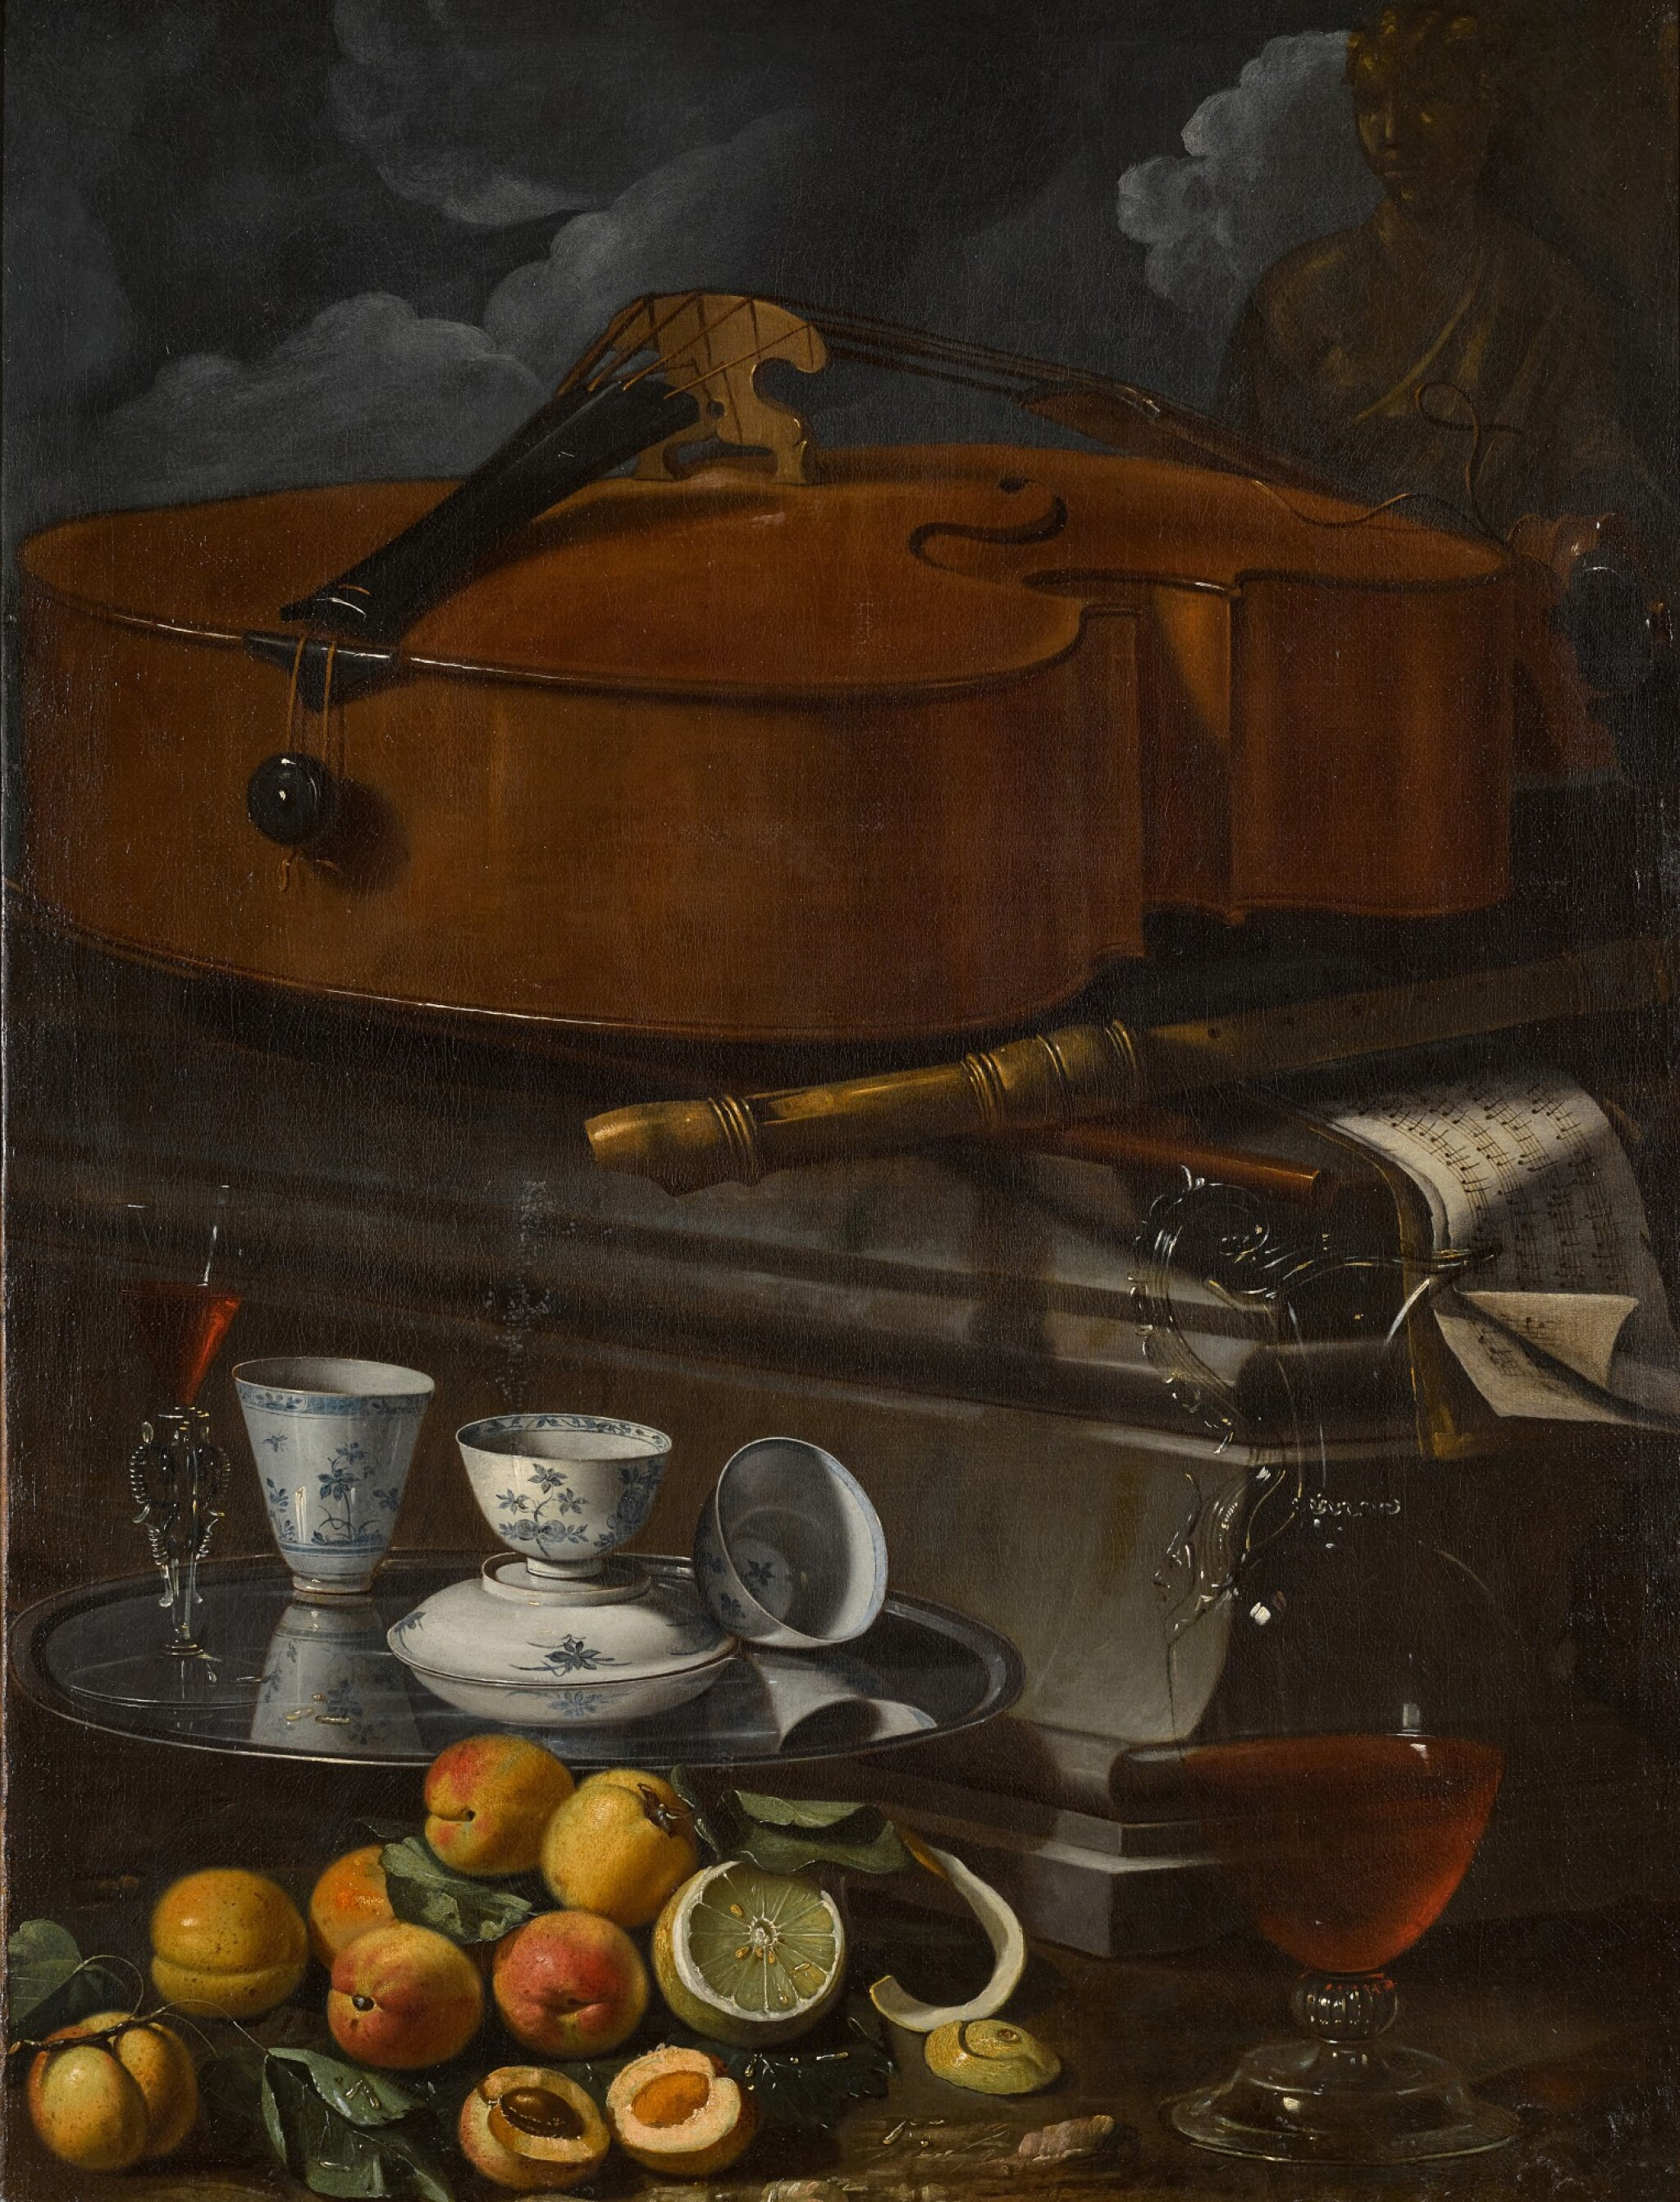 View full screen - View 1 of Lot 54. CRISTOFORO MUNARI  |  STILL LIFE WITH PORCELAIN CUPS AND A FAÇON DE VENISE GLASS ON A SALVER, WITH A GLASS WINE EWER, PEELED LEMON AND APRICOTS, BEFORE A PLINTH WITH A VIOLONCELLO, RECORDER, AND MUSICAL SCORES.